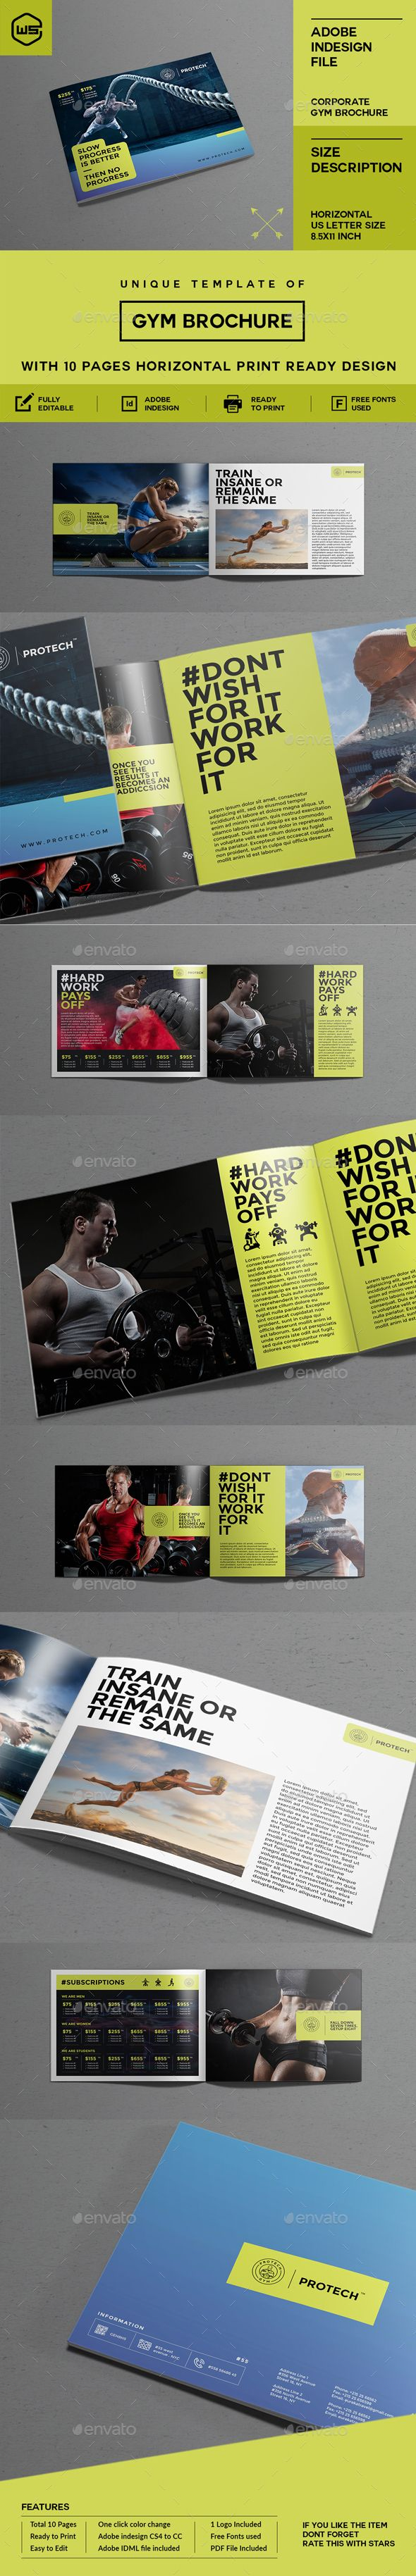 GYM / Fitness Brochure — JPG Image #gym brochure #brochure • Download ➝ https://graphicriver.net/item/gym-fitness-brochure/19251468?ref=pxcr